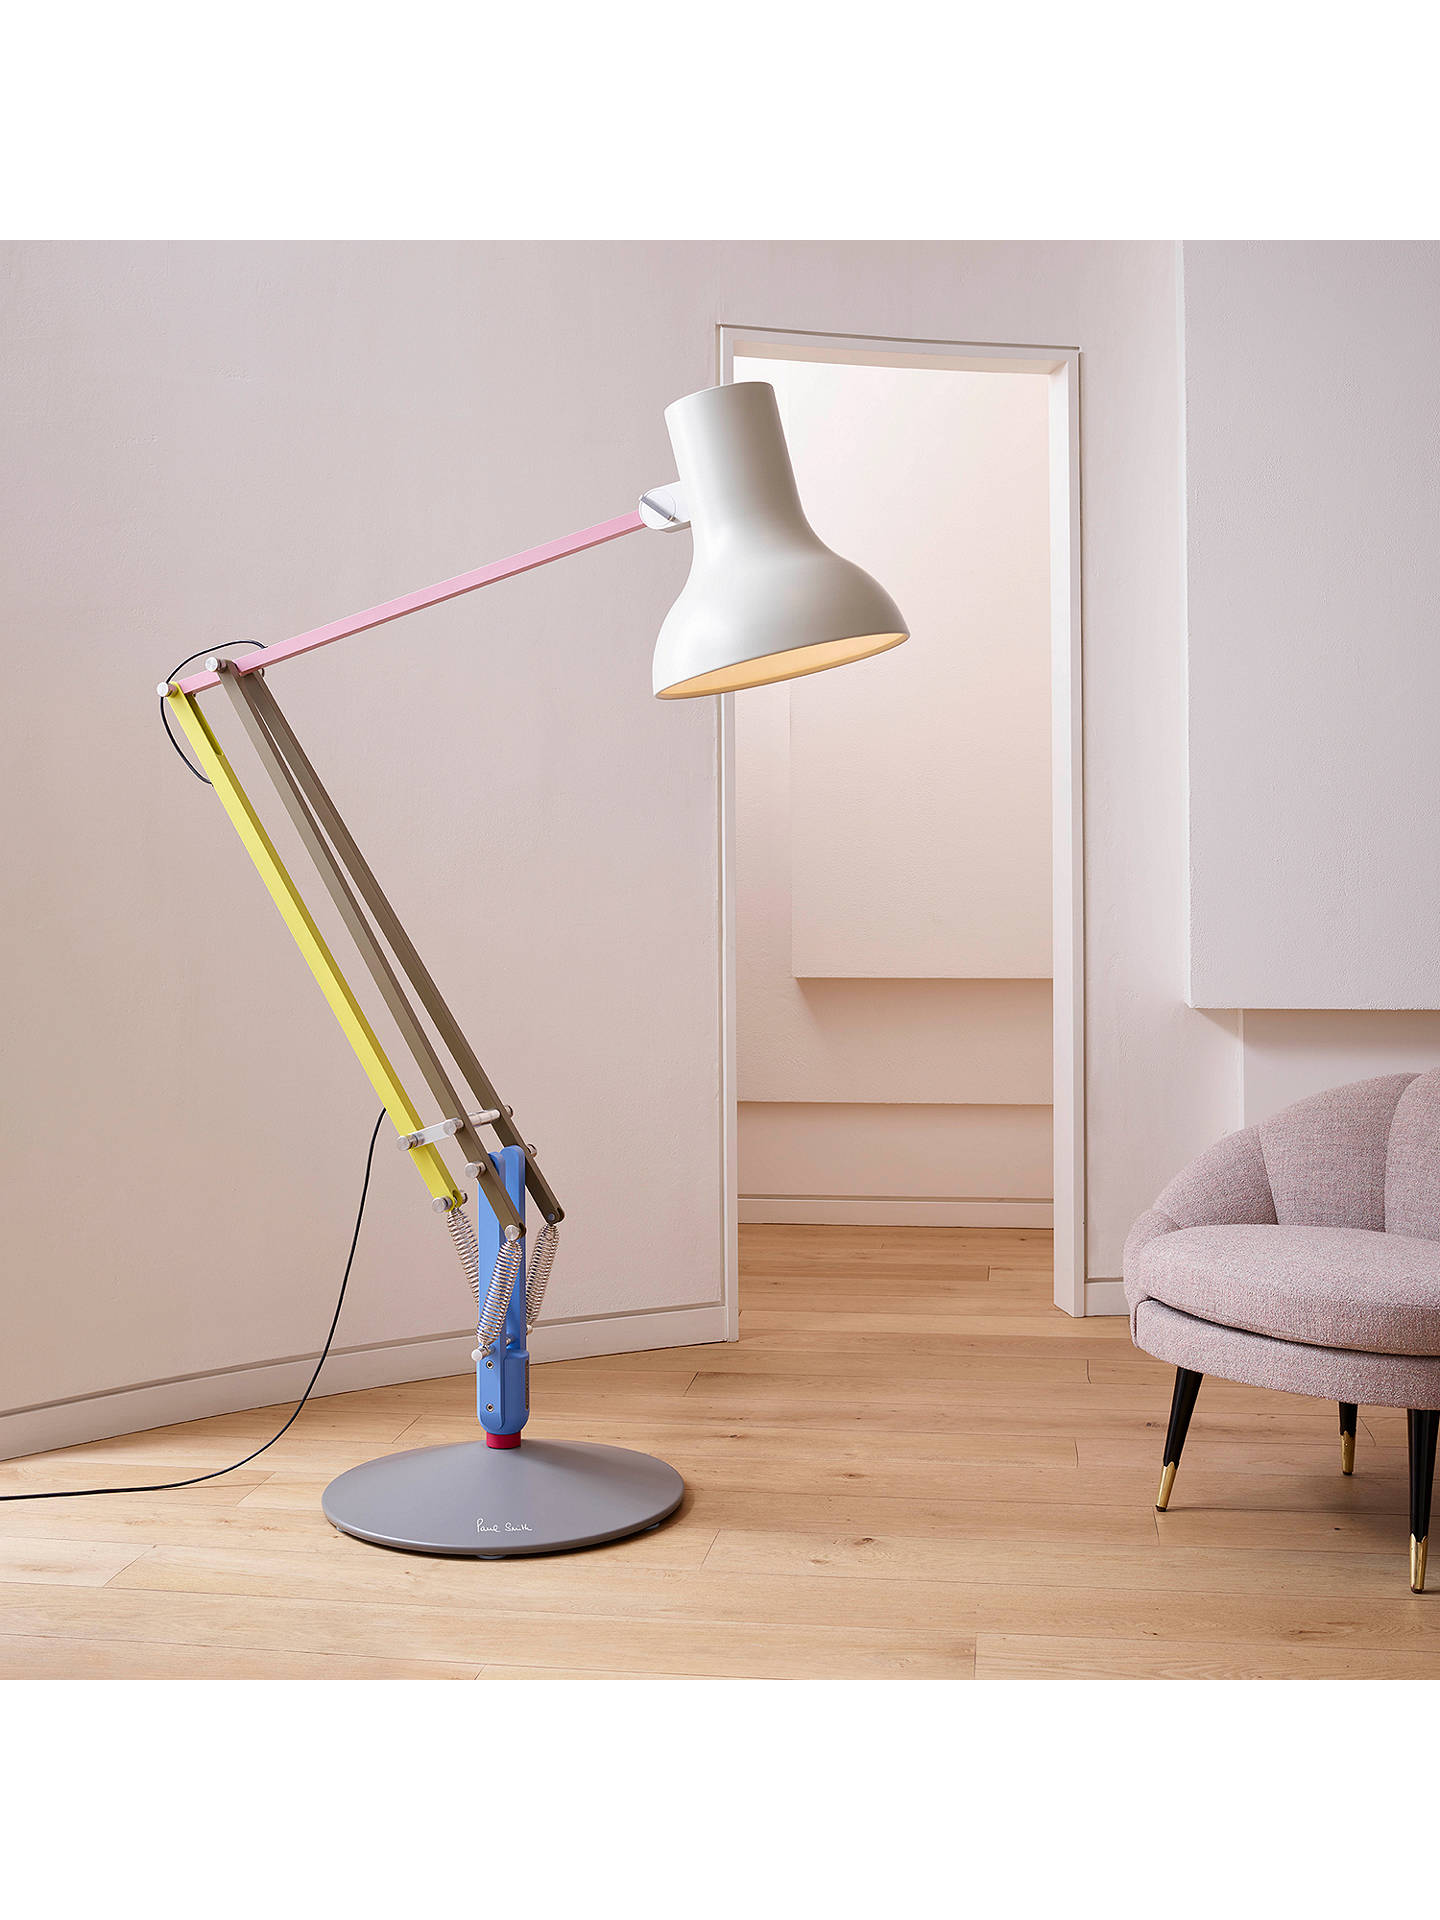 Anglepoise Paul Smith Type 75 Giant Floor Lamp Edition 1